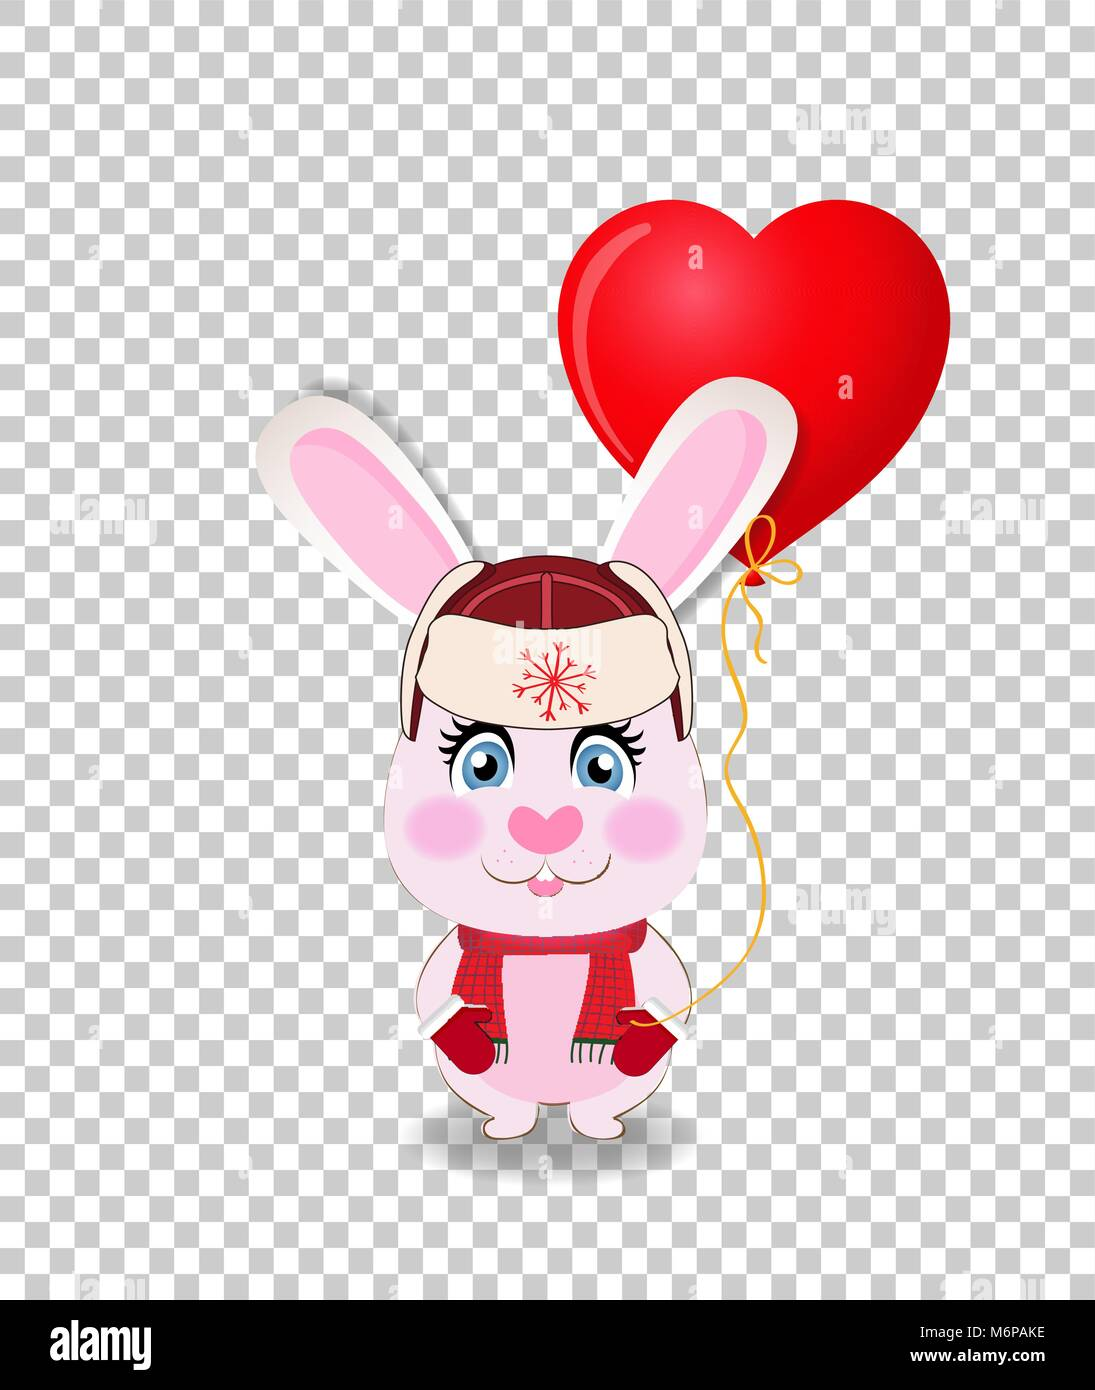 Cute cartoon rabbit in red hat with ear flaps, knit scarf and mittens holding red heart shaped balloon isolated - Stock Image